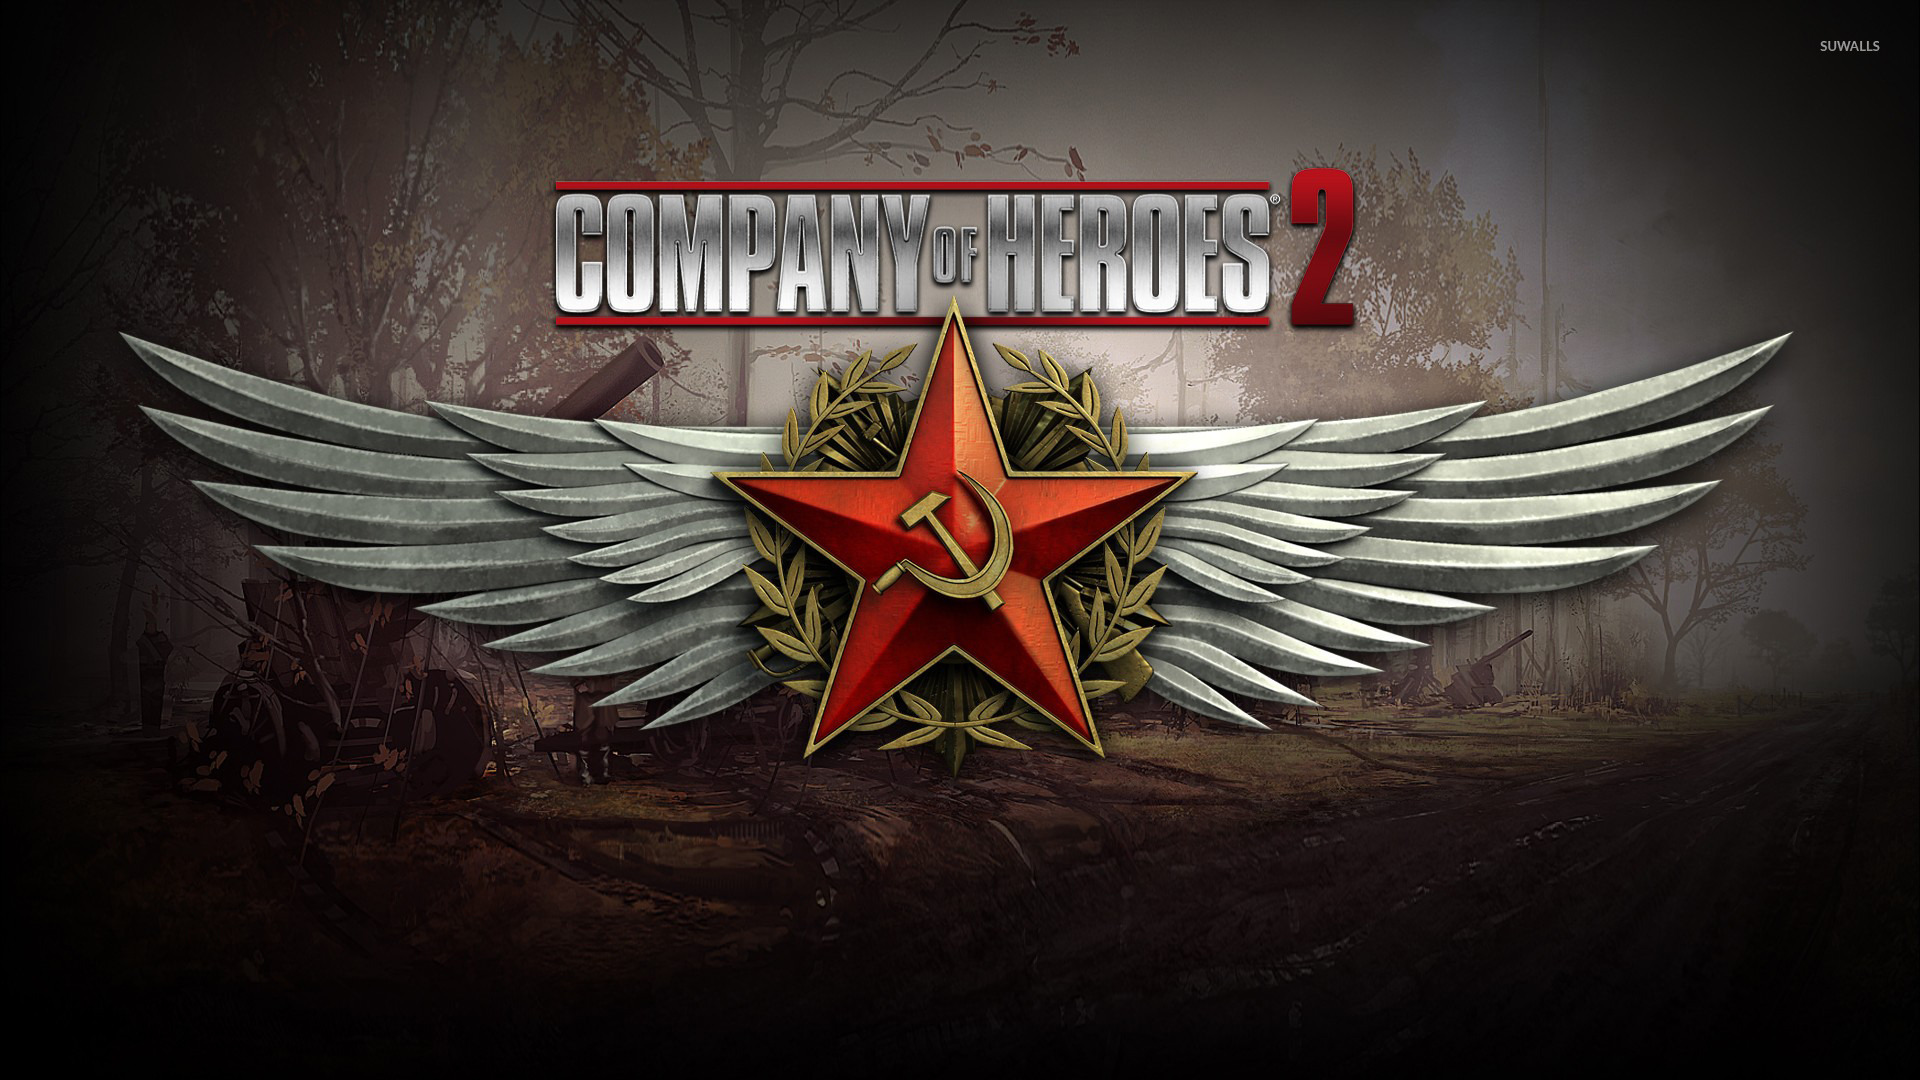 Company Of Heroes 2 Wallpaper Game Wallpapers 21672